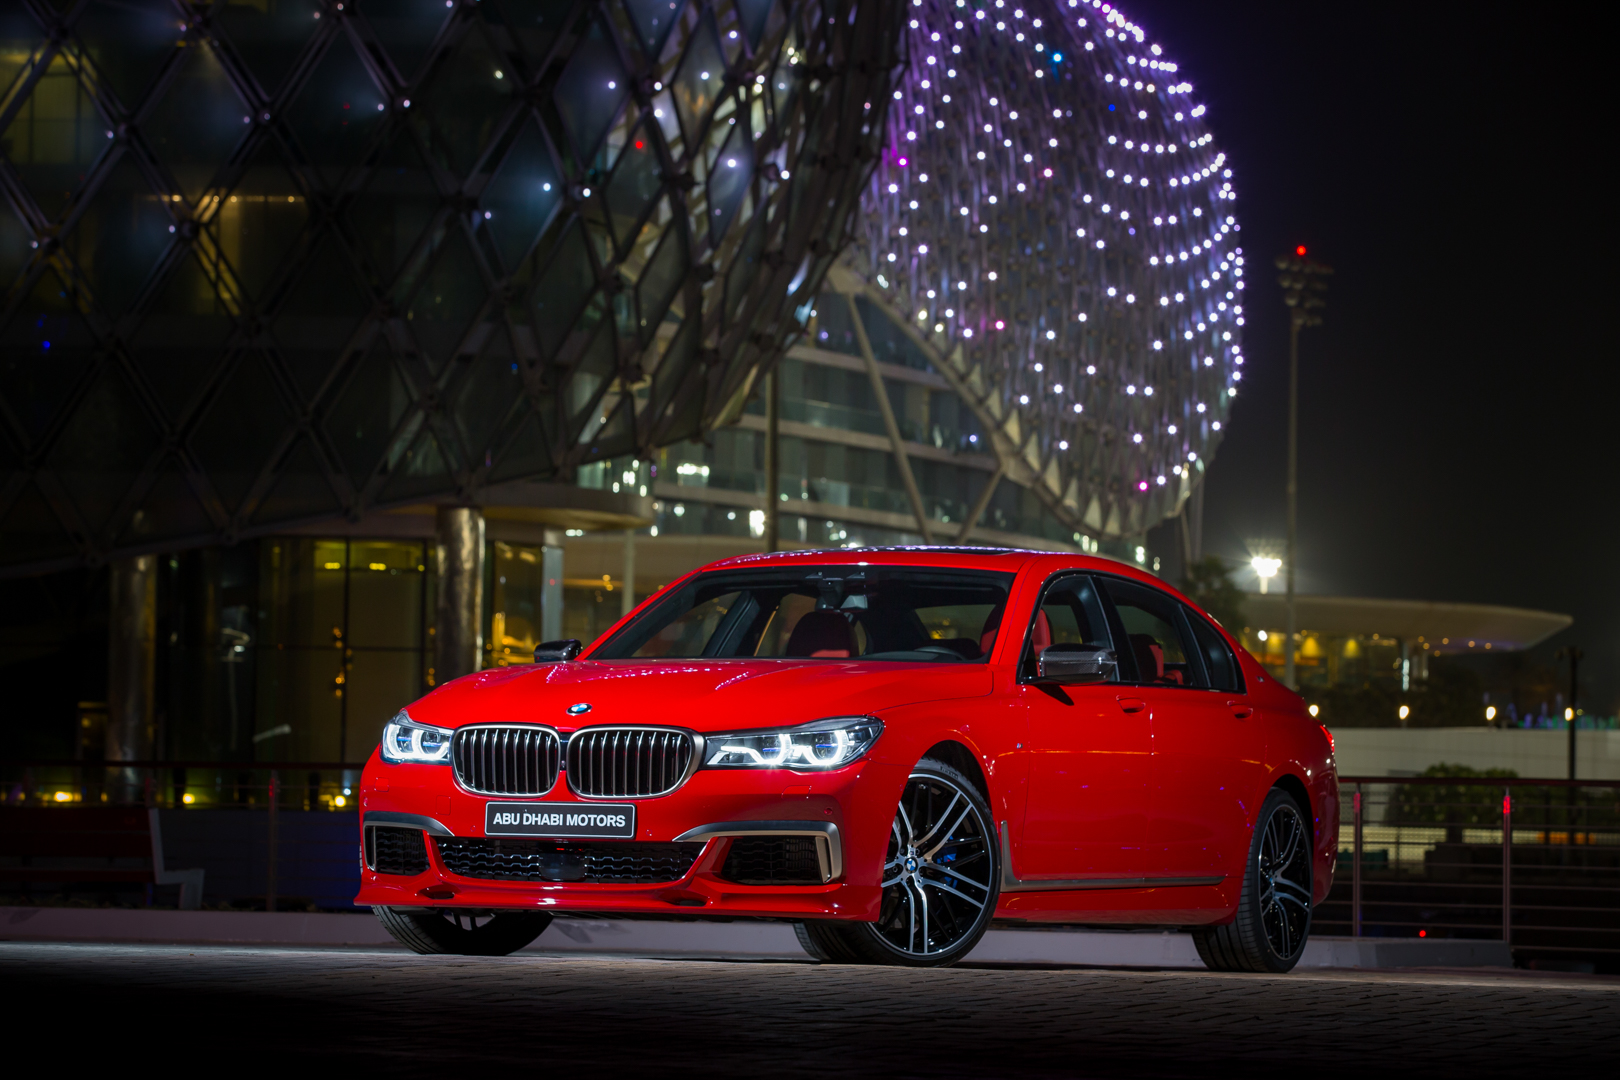 G11 G12 Bmw 7 Series Facelift Starts Production In March 2019